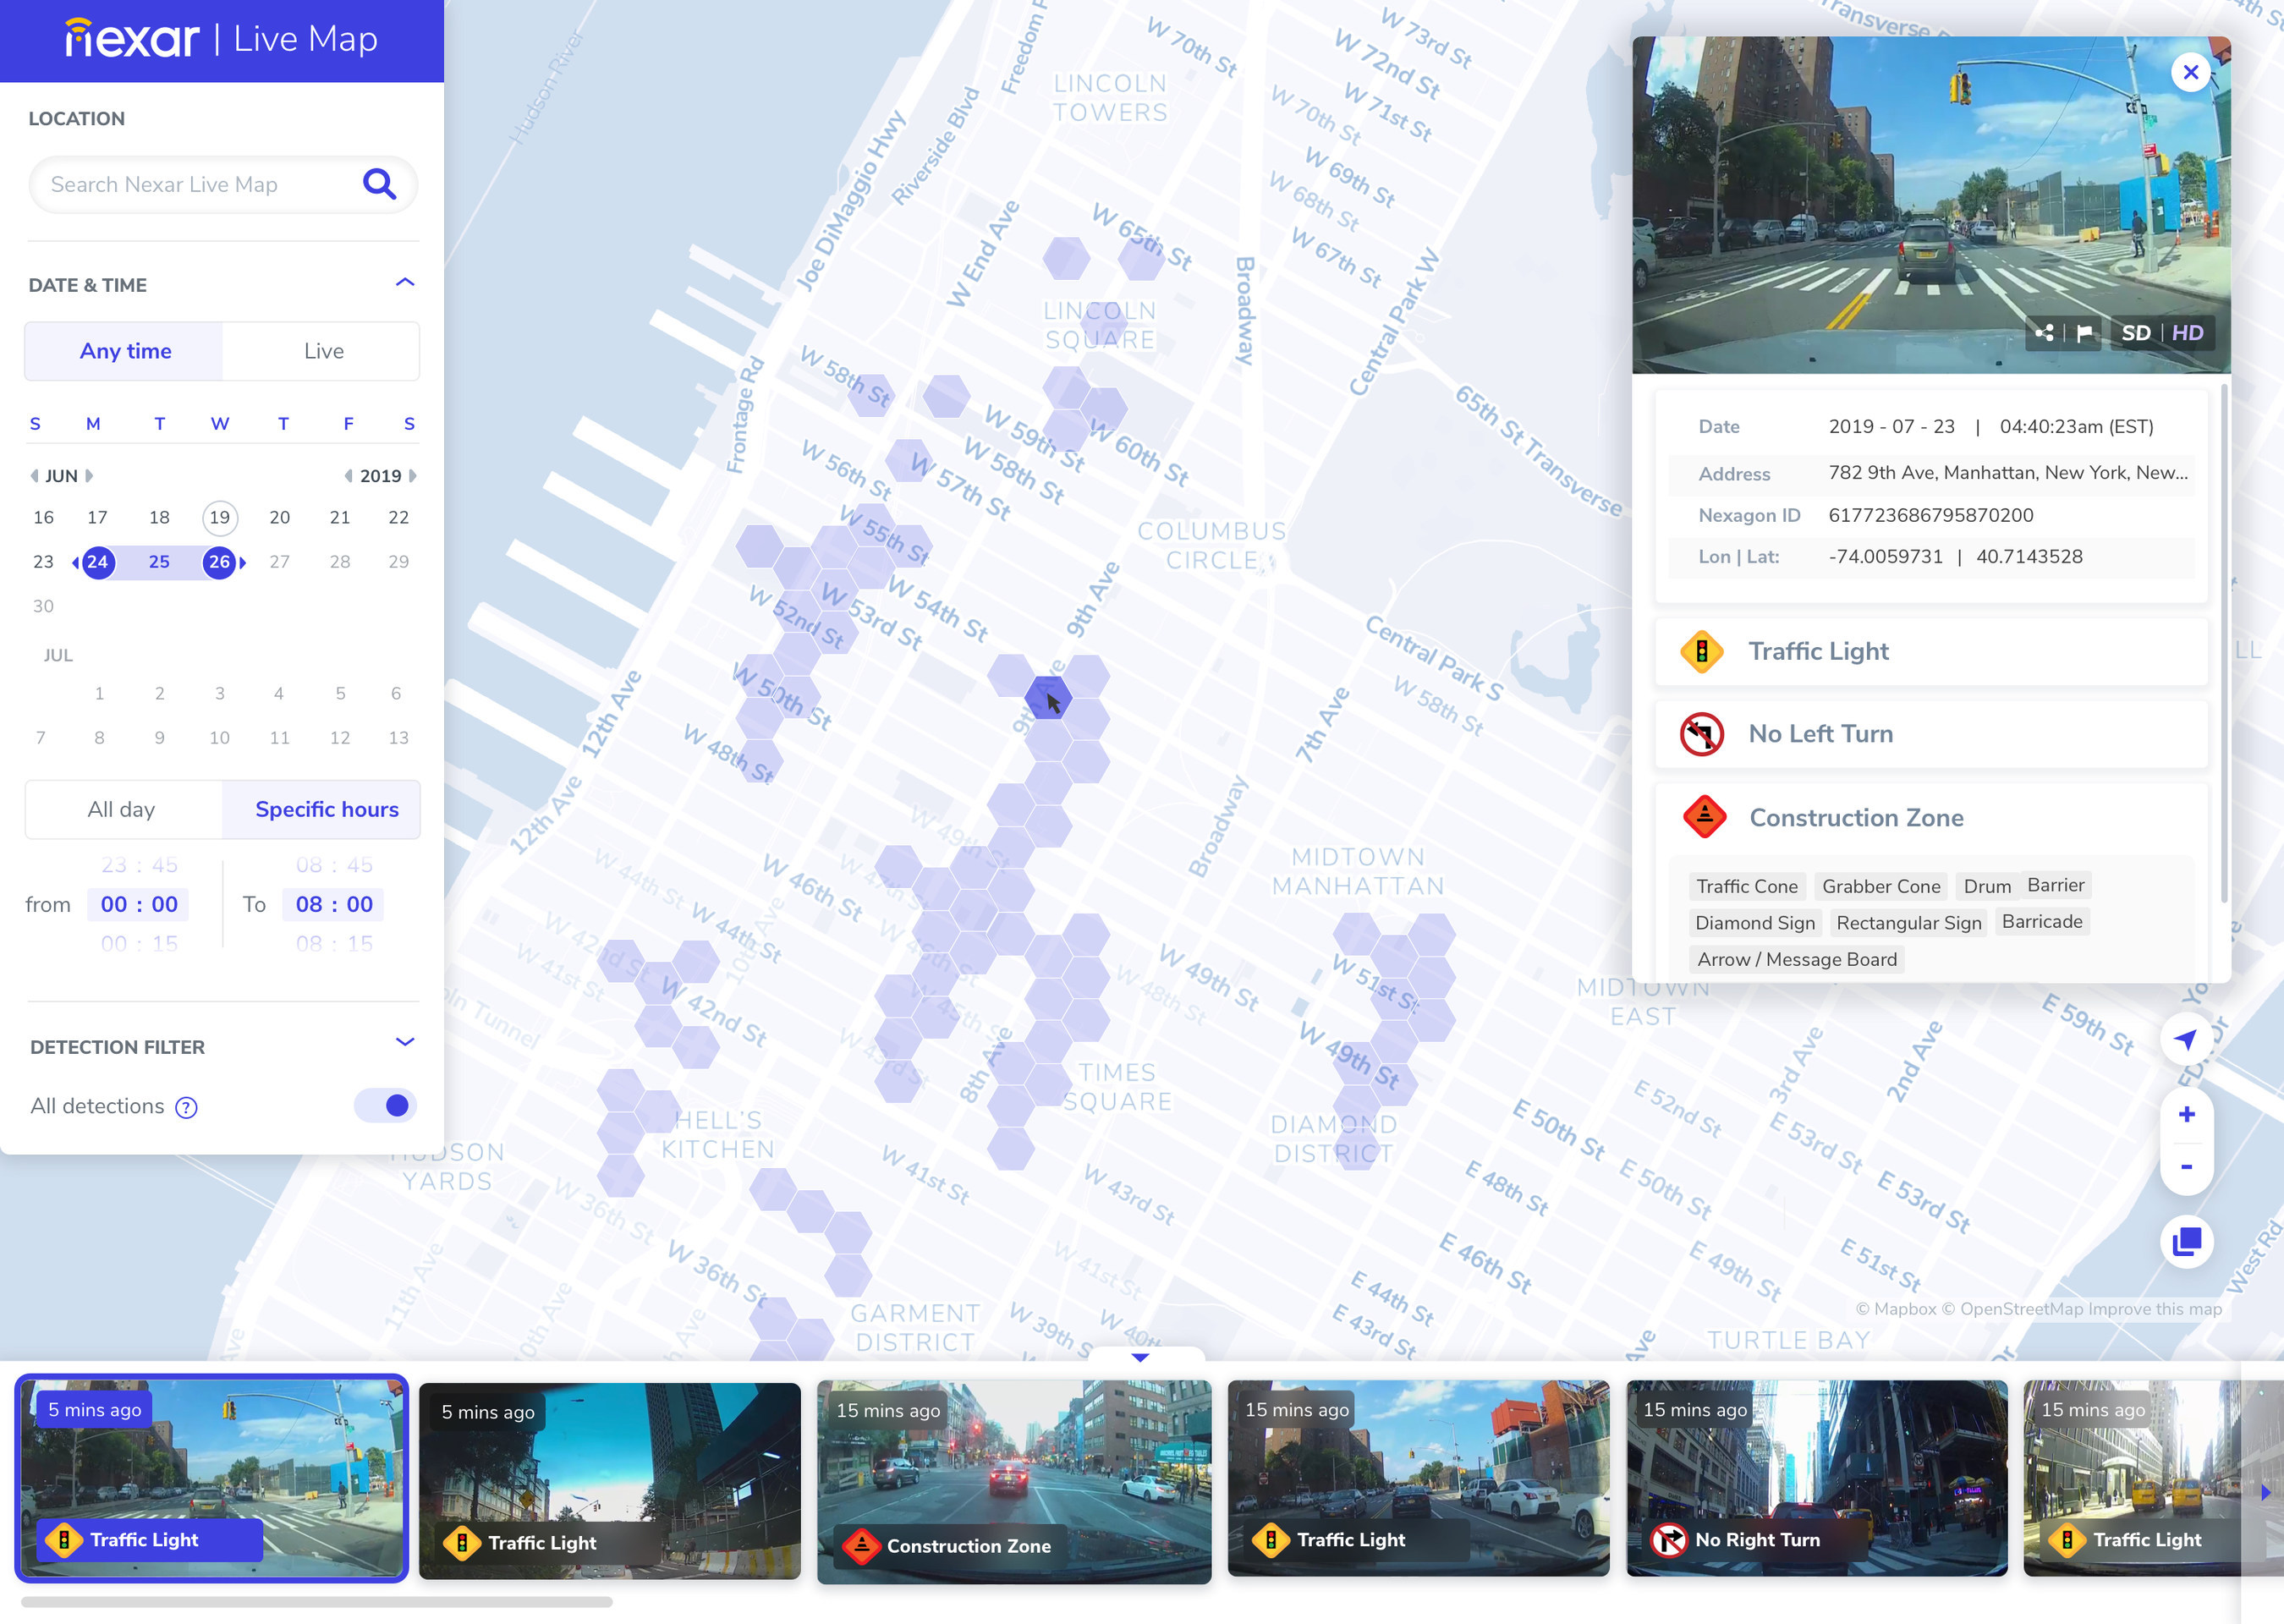 Nexar announces the launch of Live Map on